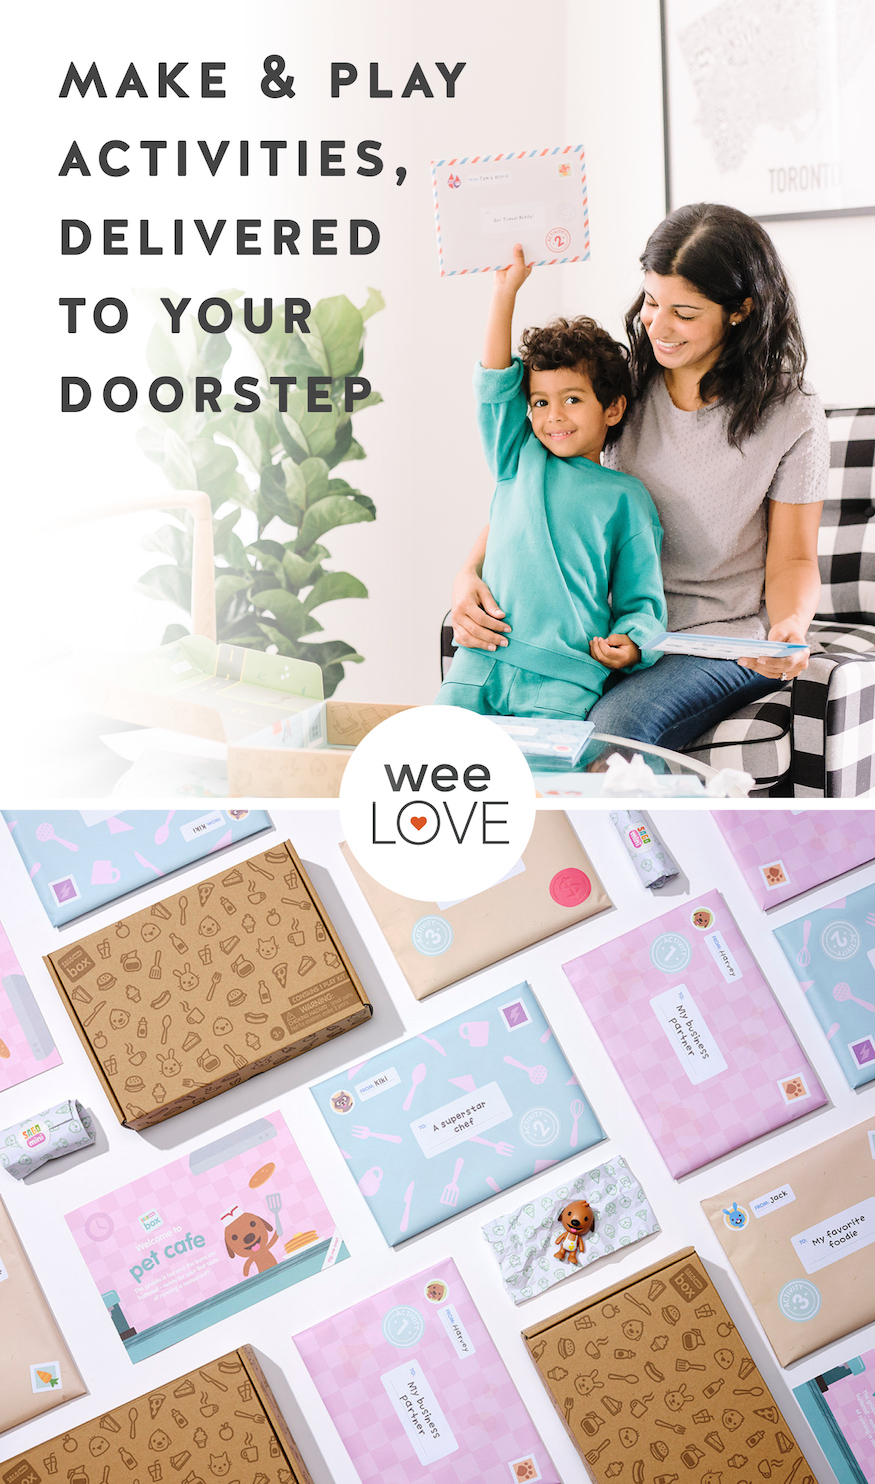 "a two-part image, with the top photo of a mom and son excitedly sitting in a chair together, looking at their Sago Mini subscription box with the overlay text reading ""make and play activities, delivered to your doorstep."" The bottom image is a flat-lay of items found in a typical Sago Mini subscription box"